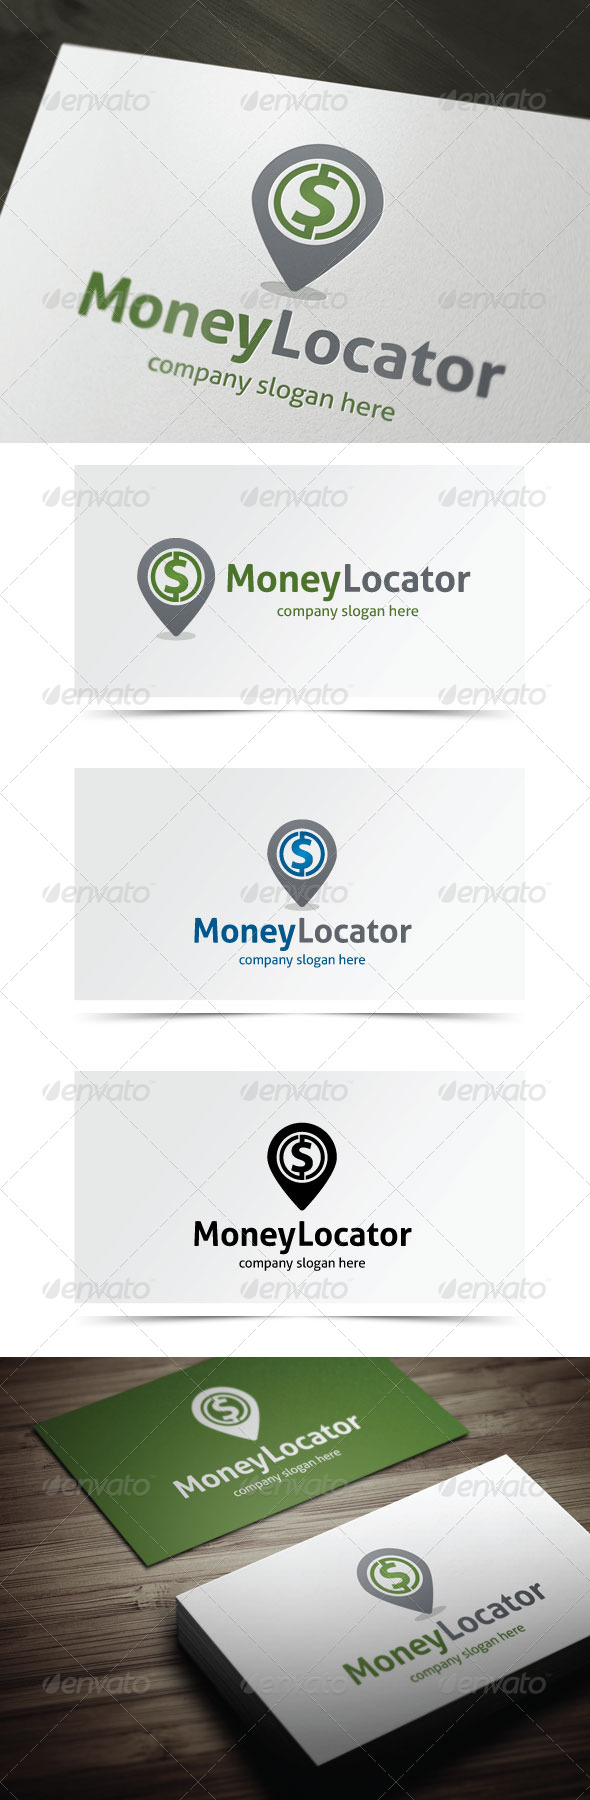 GraphicRiver Money Locator 5483788